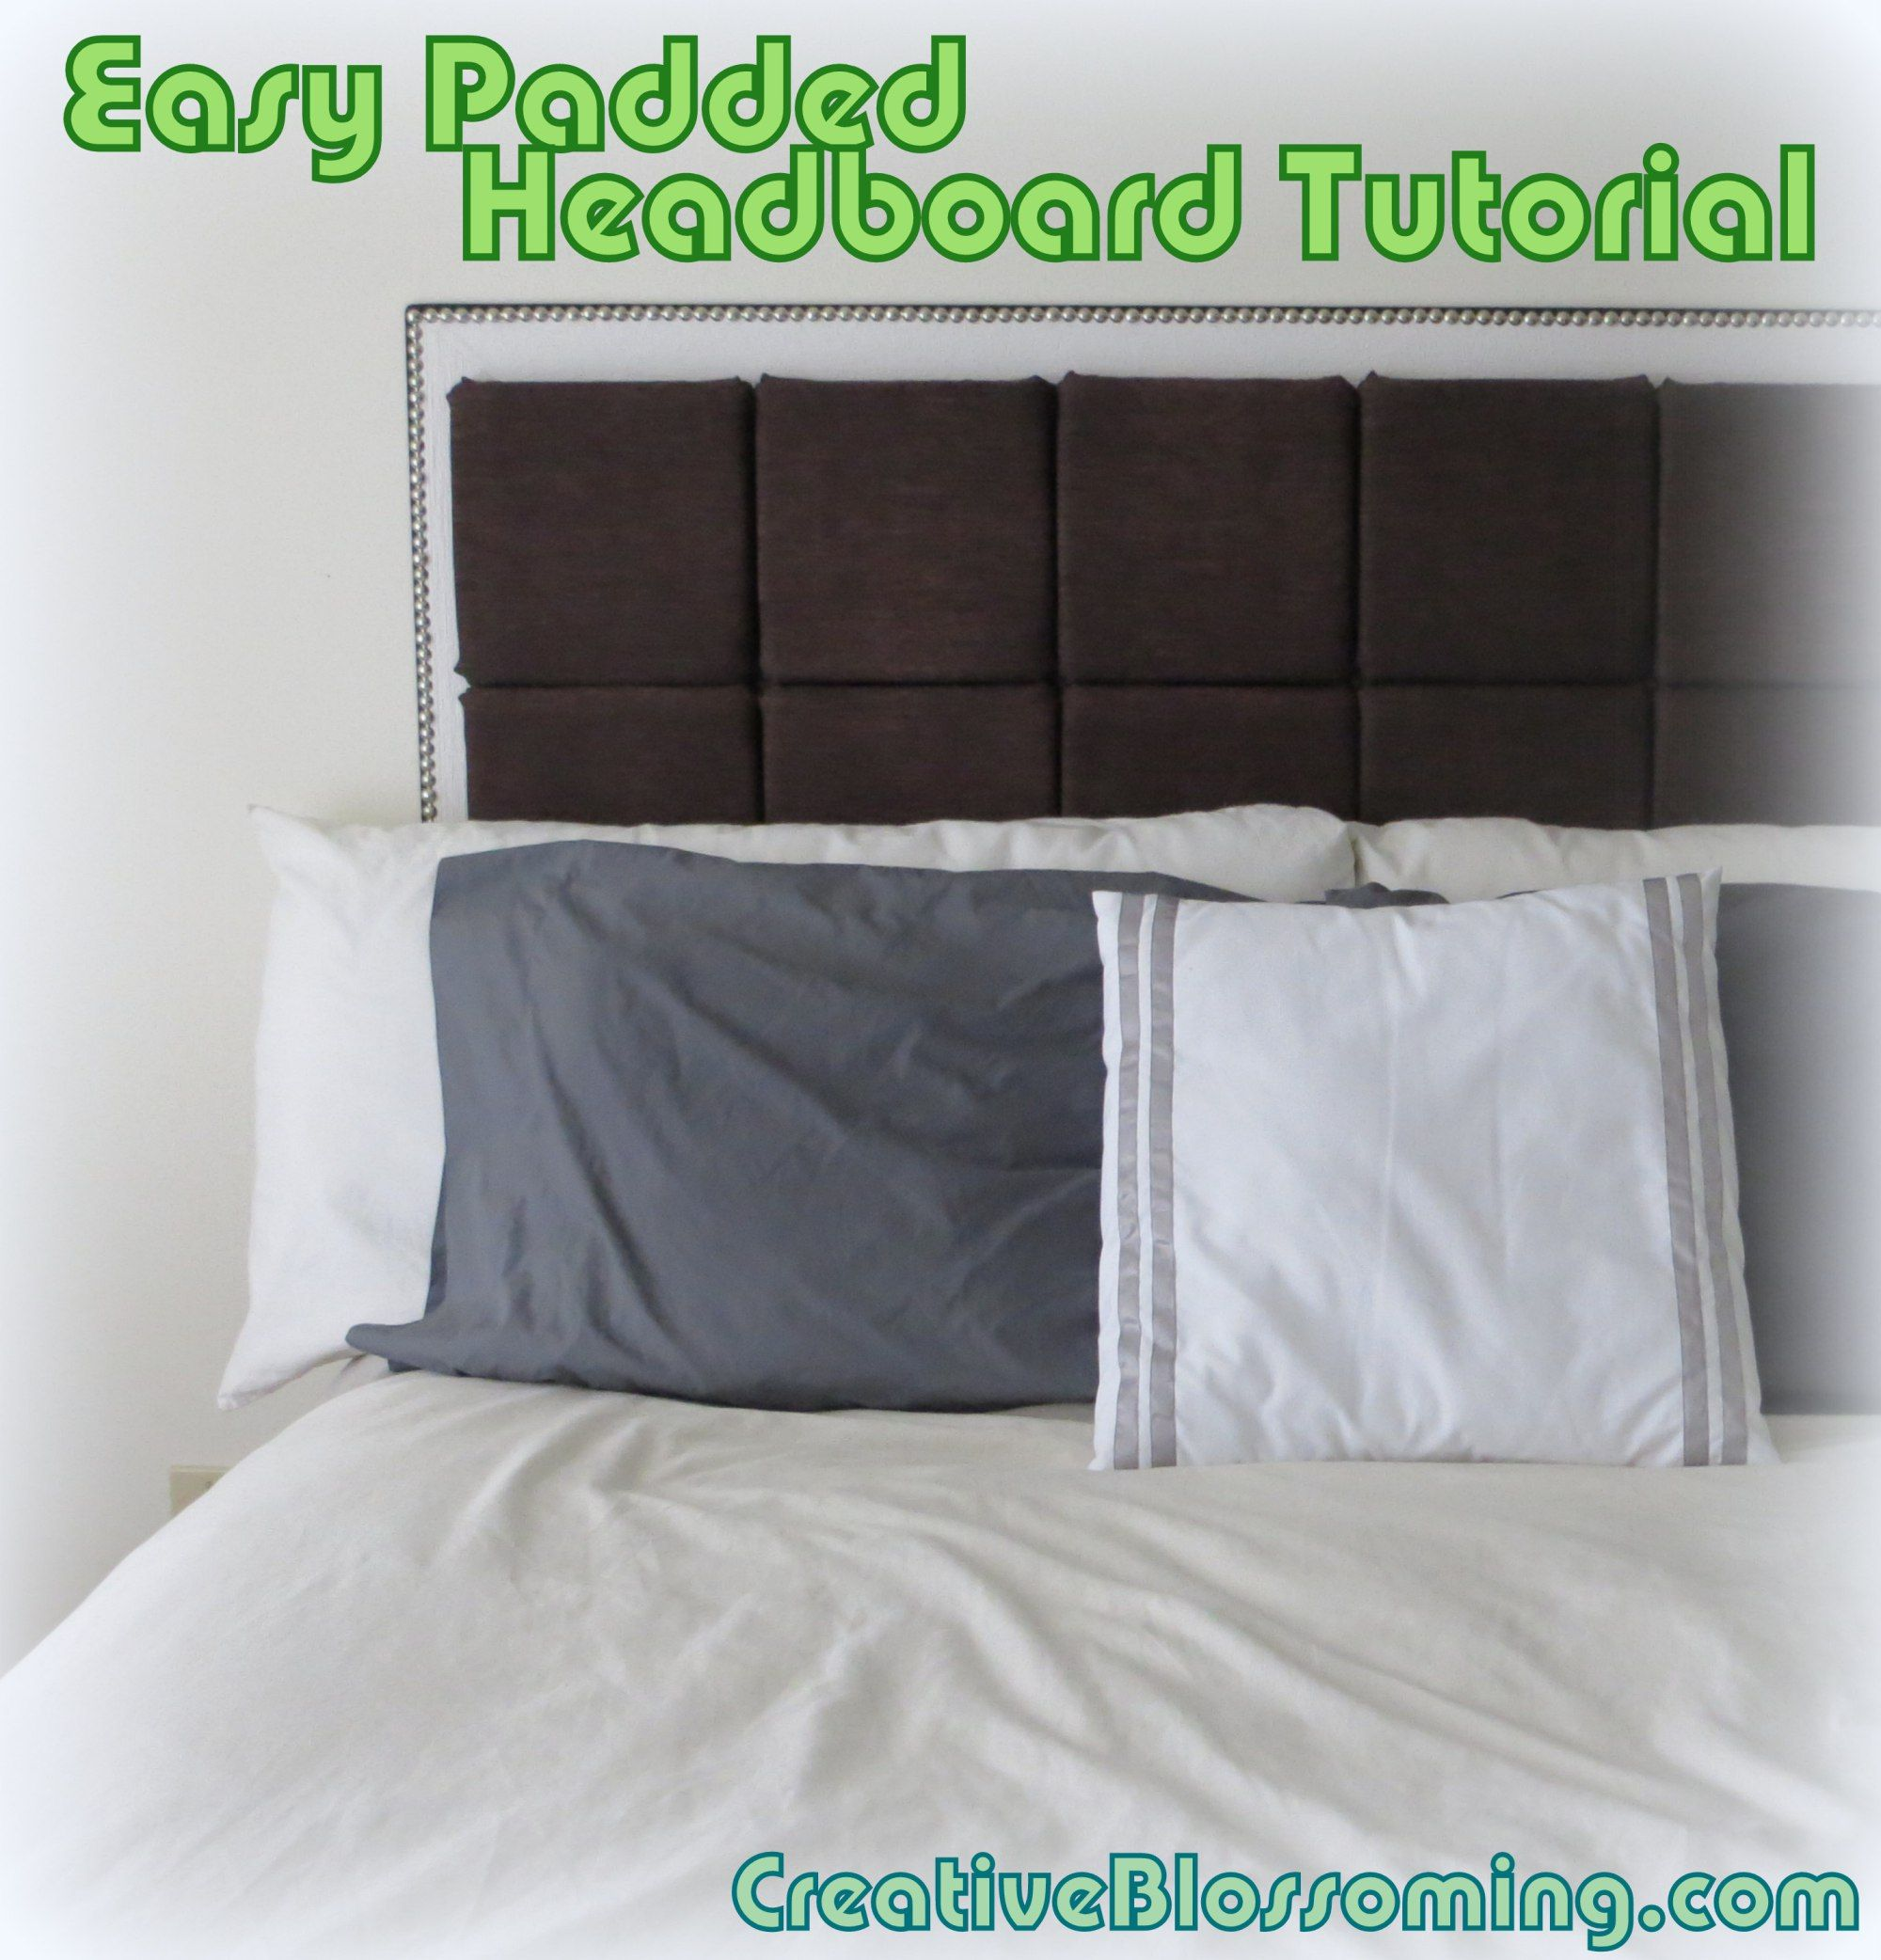 Diy Easy Padded Headboard Tutorial Headboard Tutorial Cheap